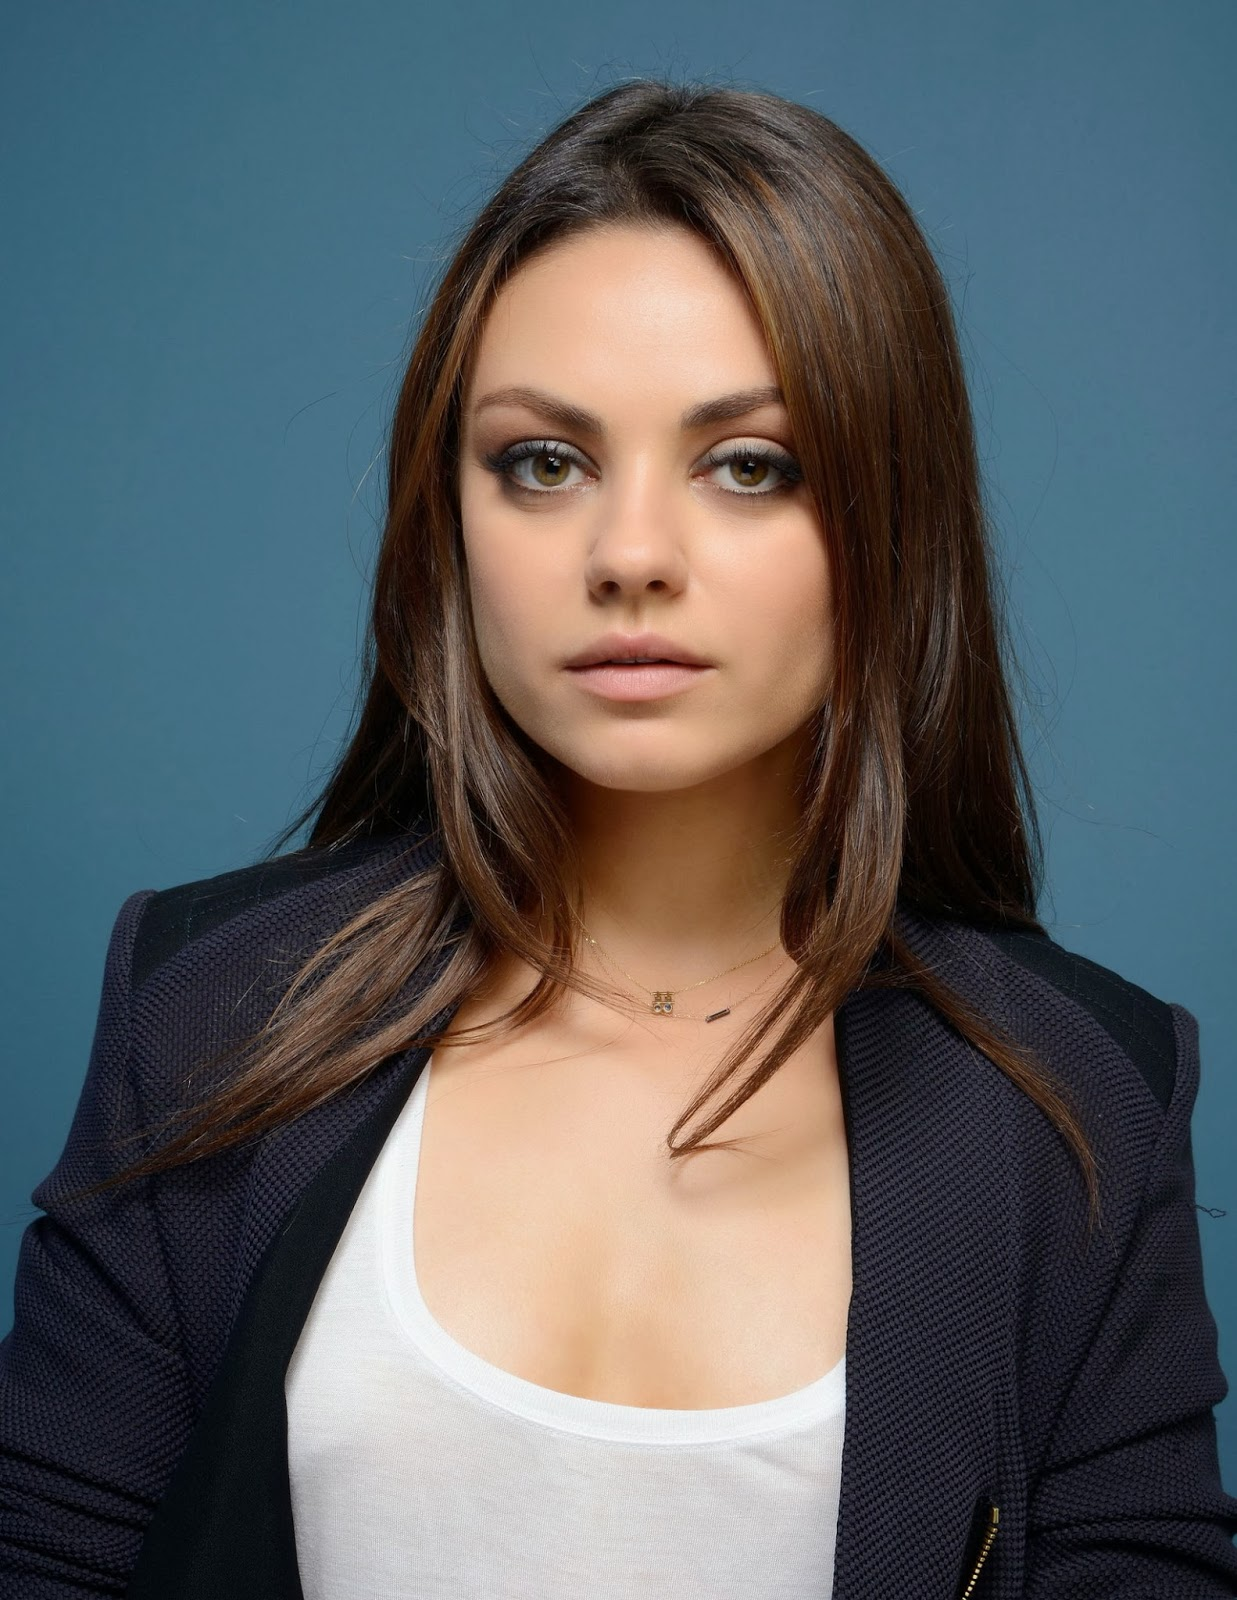 Mila Kunis Wearing a Suit and Showing Some Cleavage